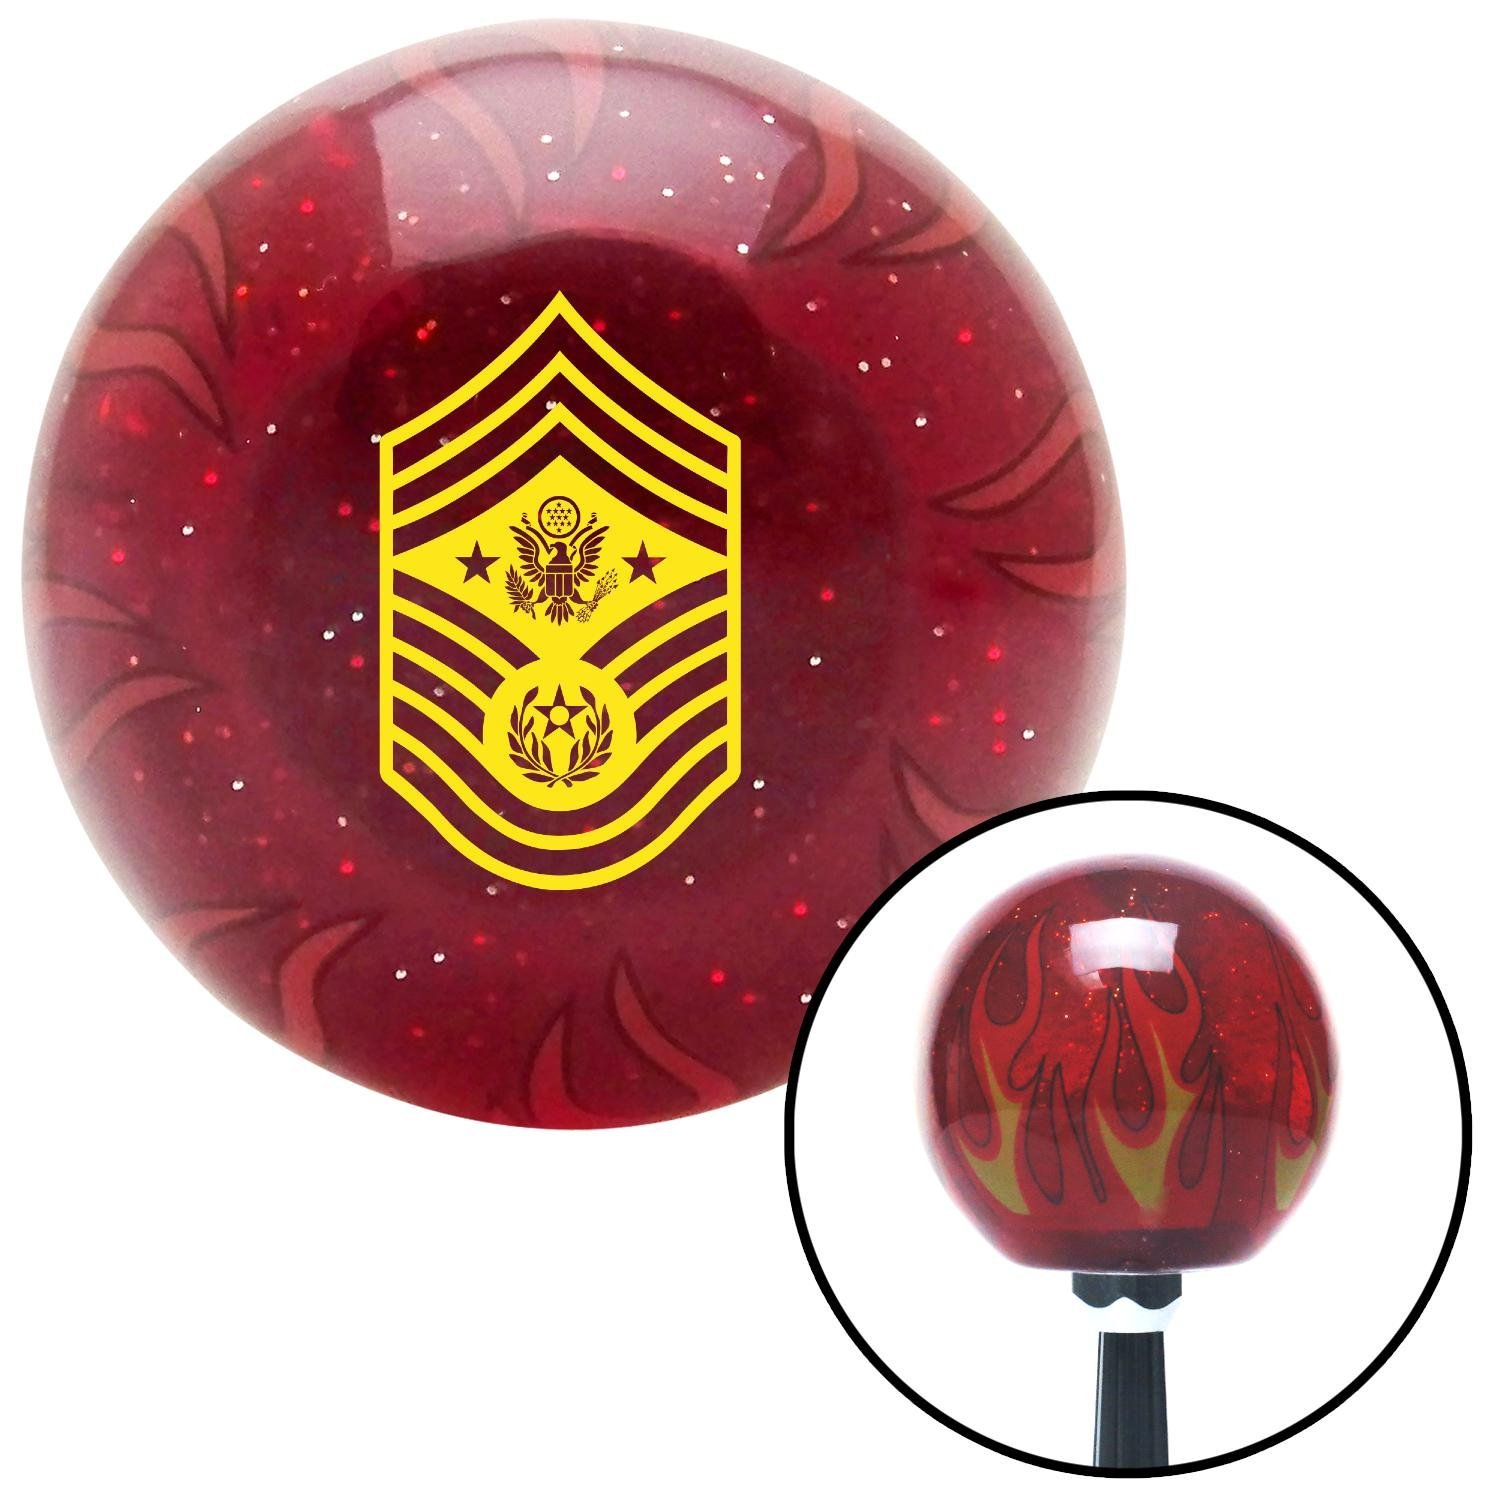 American Shifter 234609 Clear Flame Metal Flake Shift Knob with M16 x 1.5 Insert Green Shift Pattern 35n